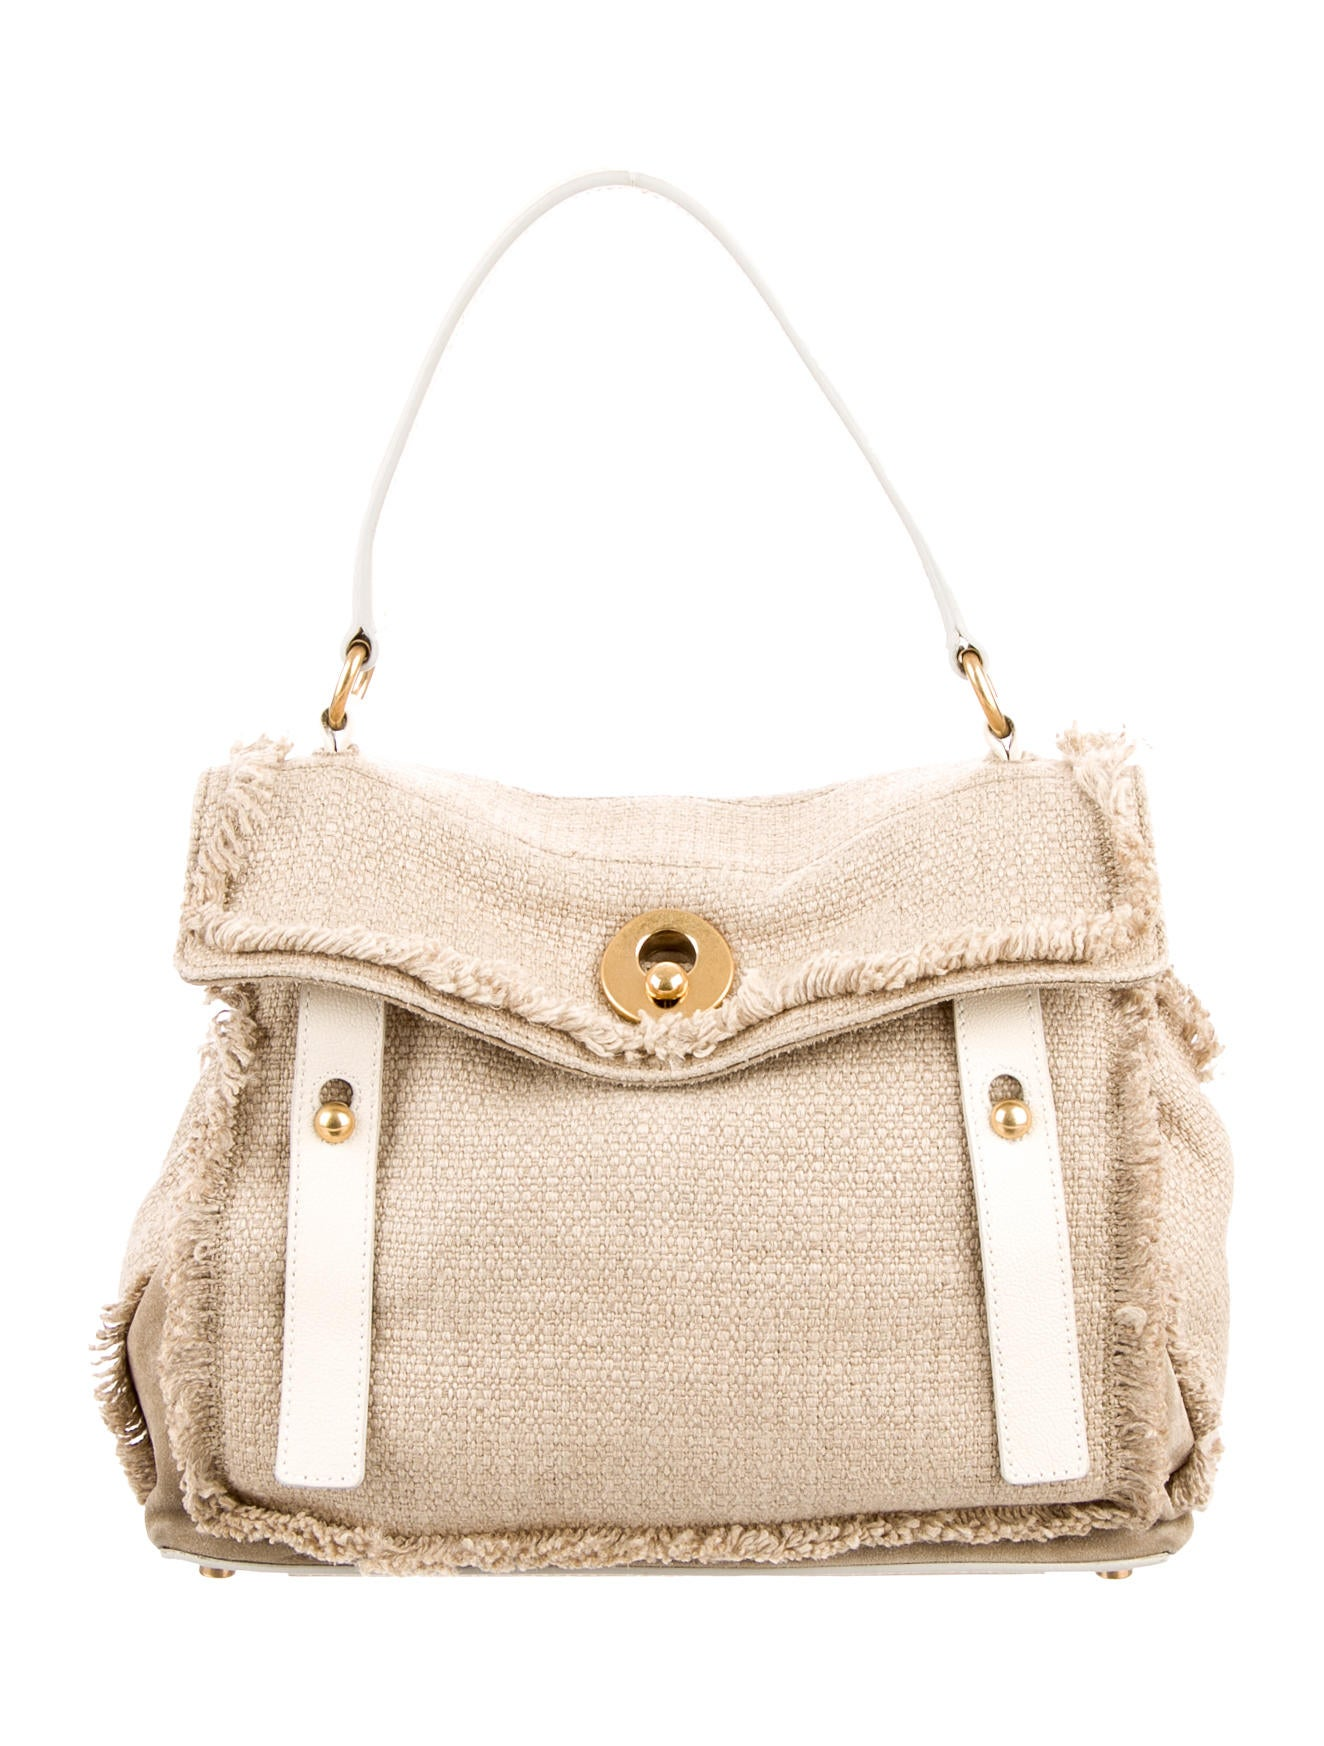 Yves Saint Laurent Raffia Muse Two Bag - Handbags - YVE40311 | The ...